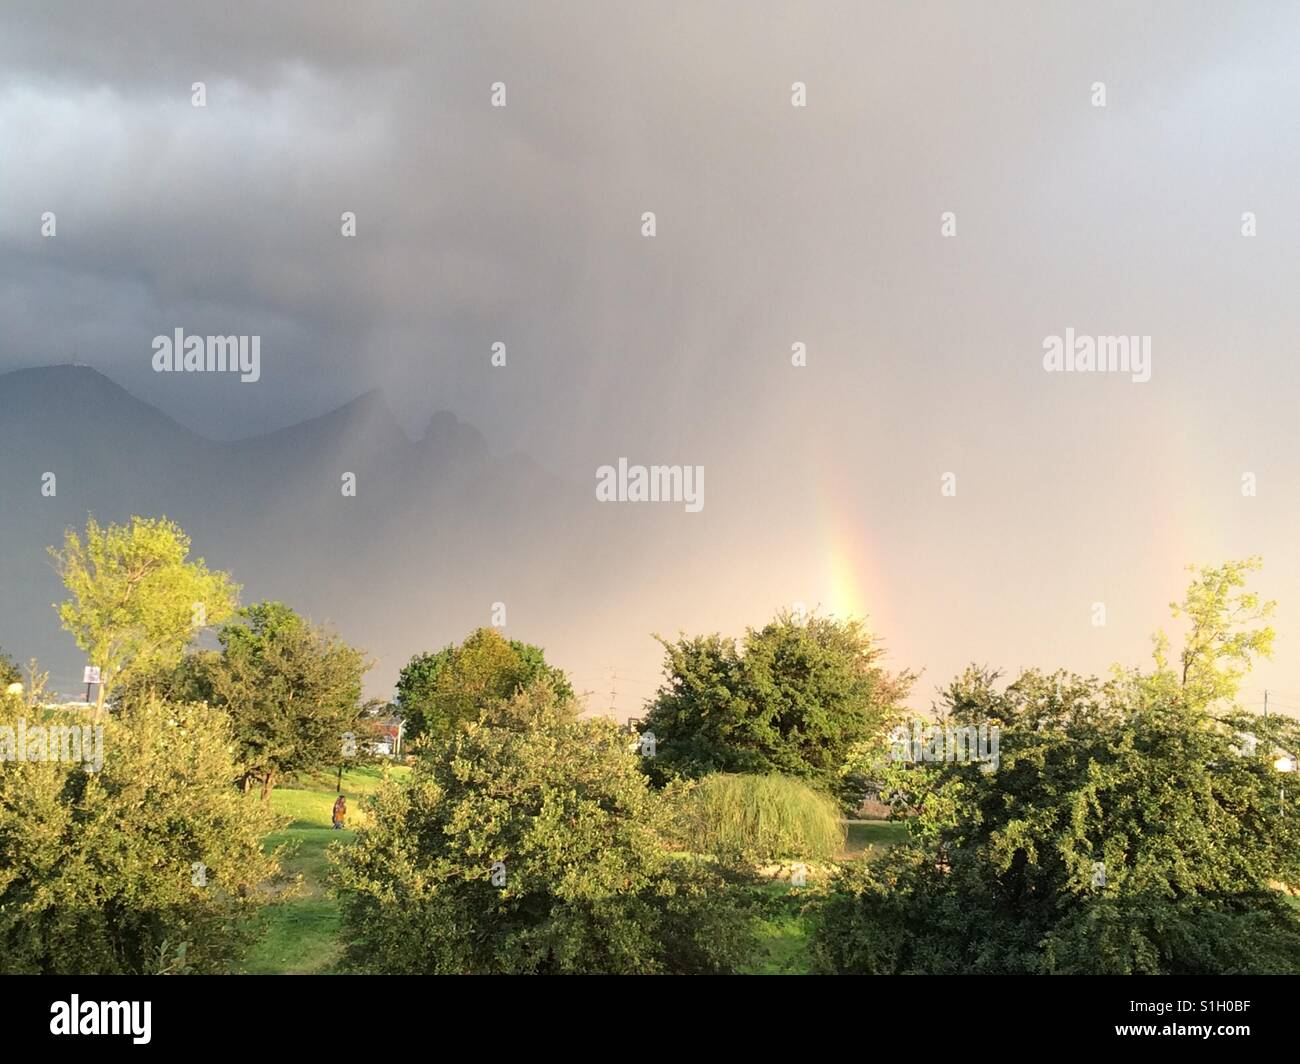 Rainbow in a turmoil of clouds - Stock Image